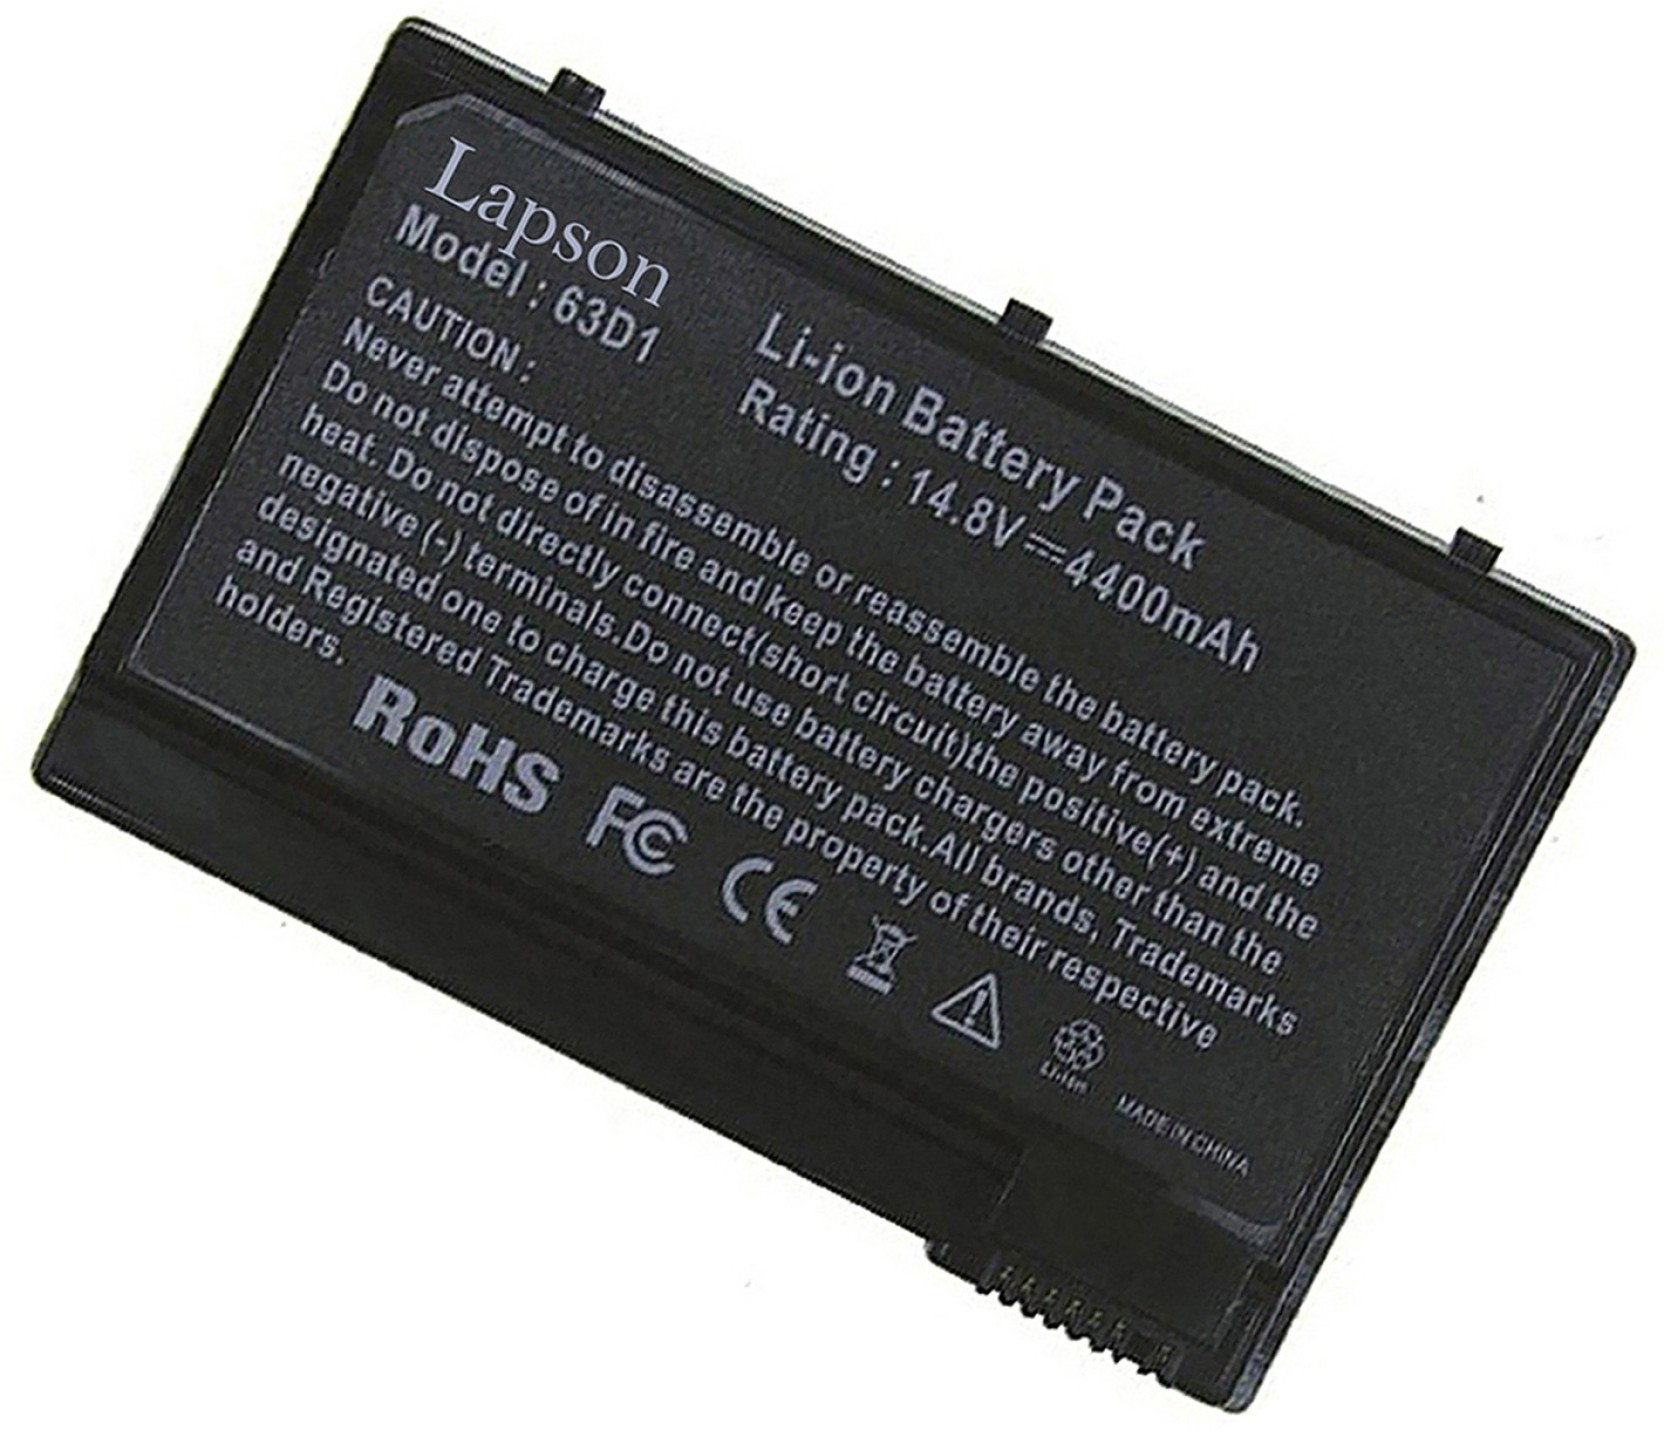 Lapson C310xc 6 Cell Laptop Battery Power Supply Circuit Charging Add To Cart